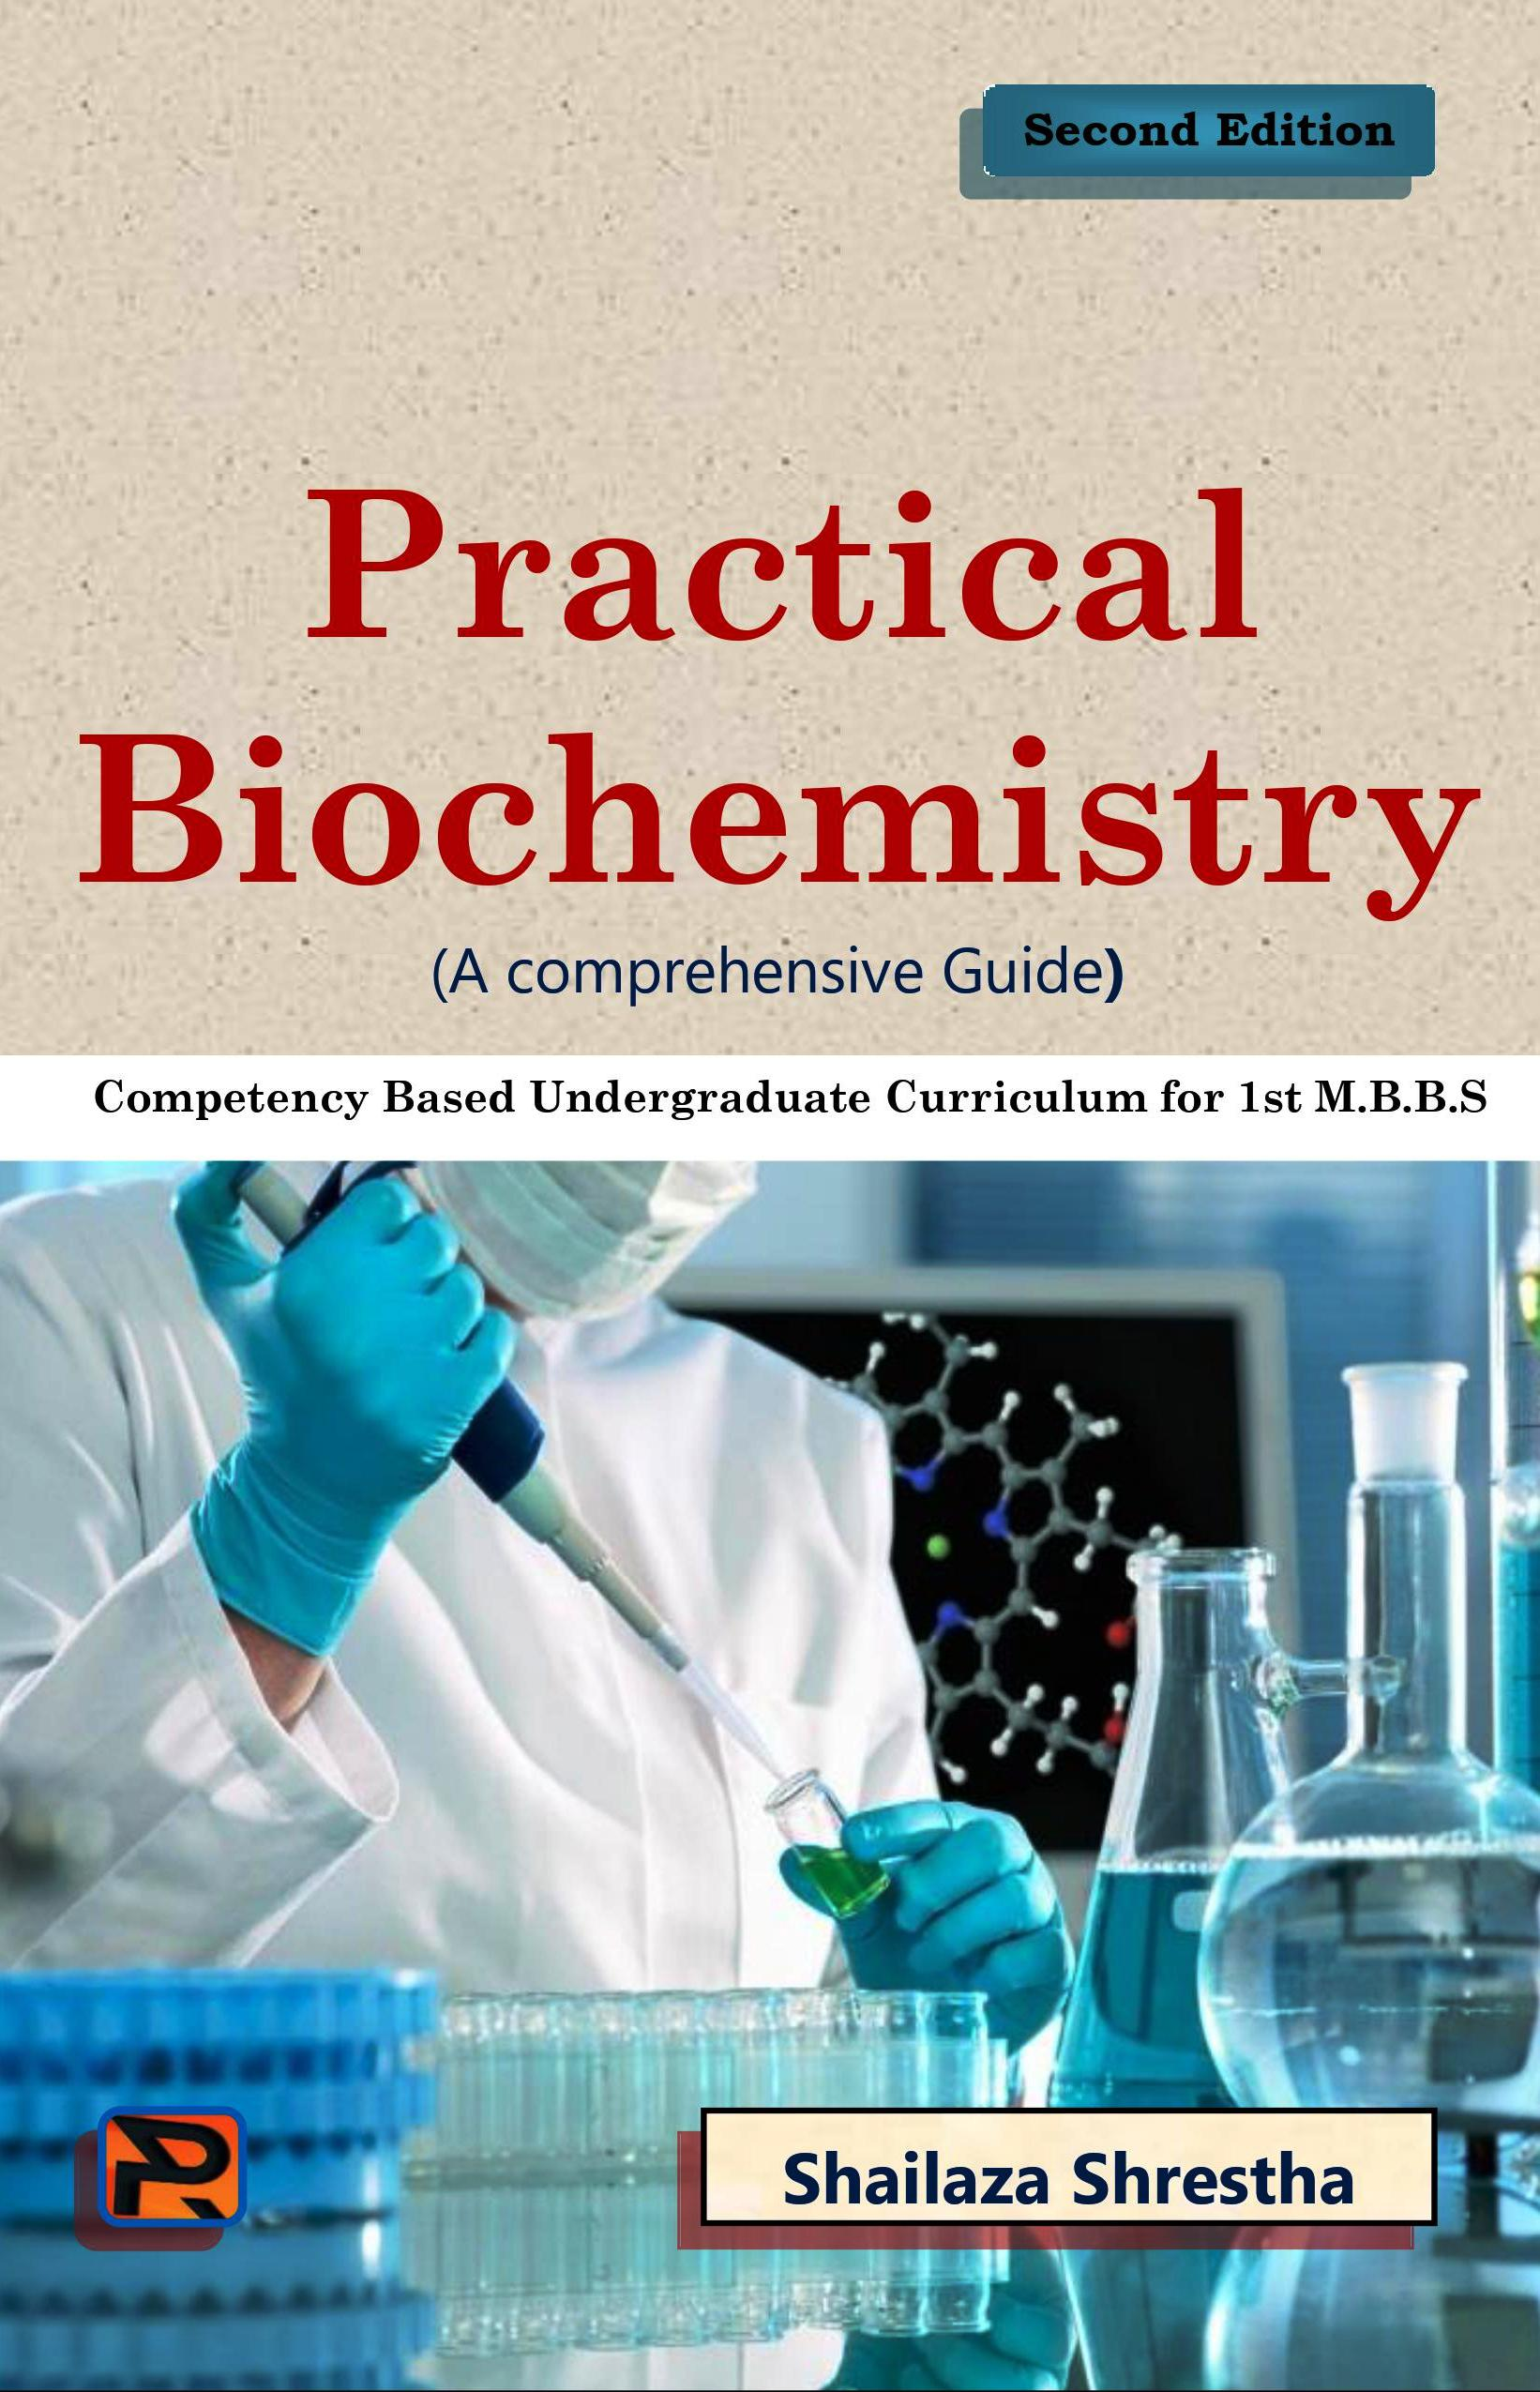 Practical Biochemistry- A Comprehensive Guide